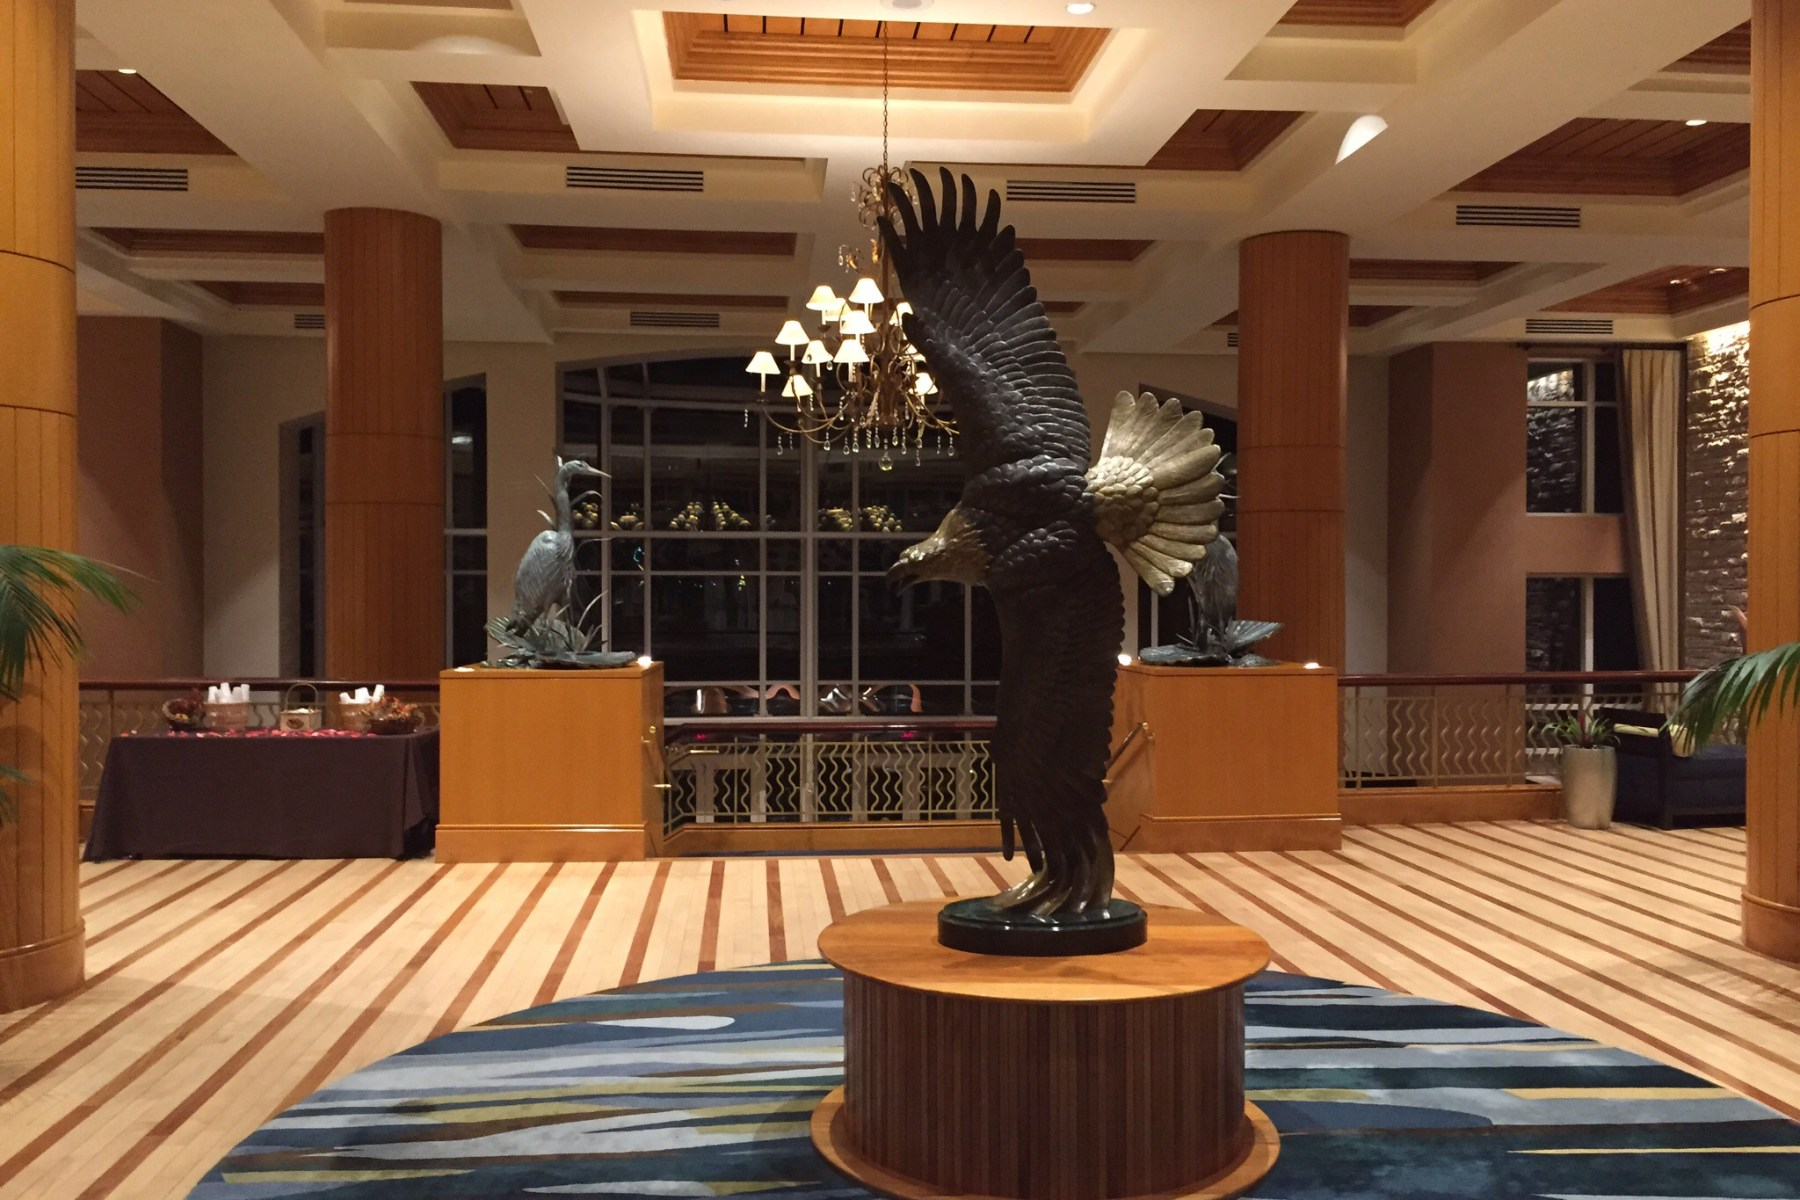 hyatt regency chesapeake bay maryland resort